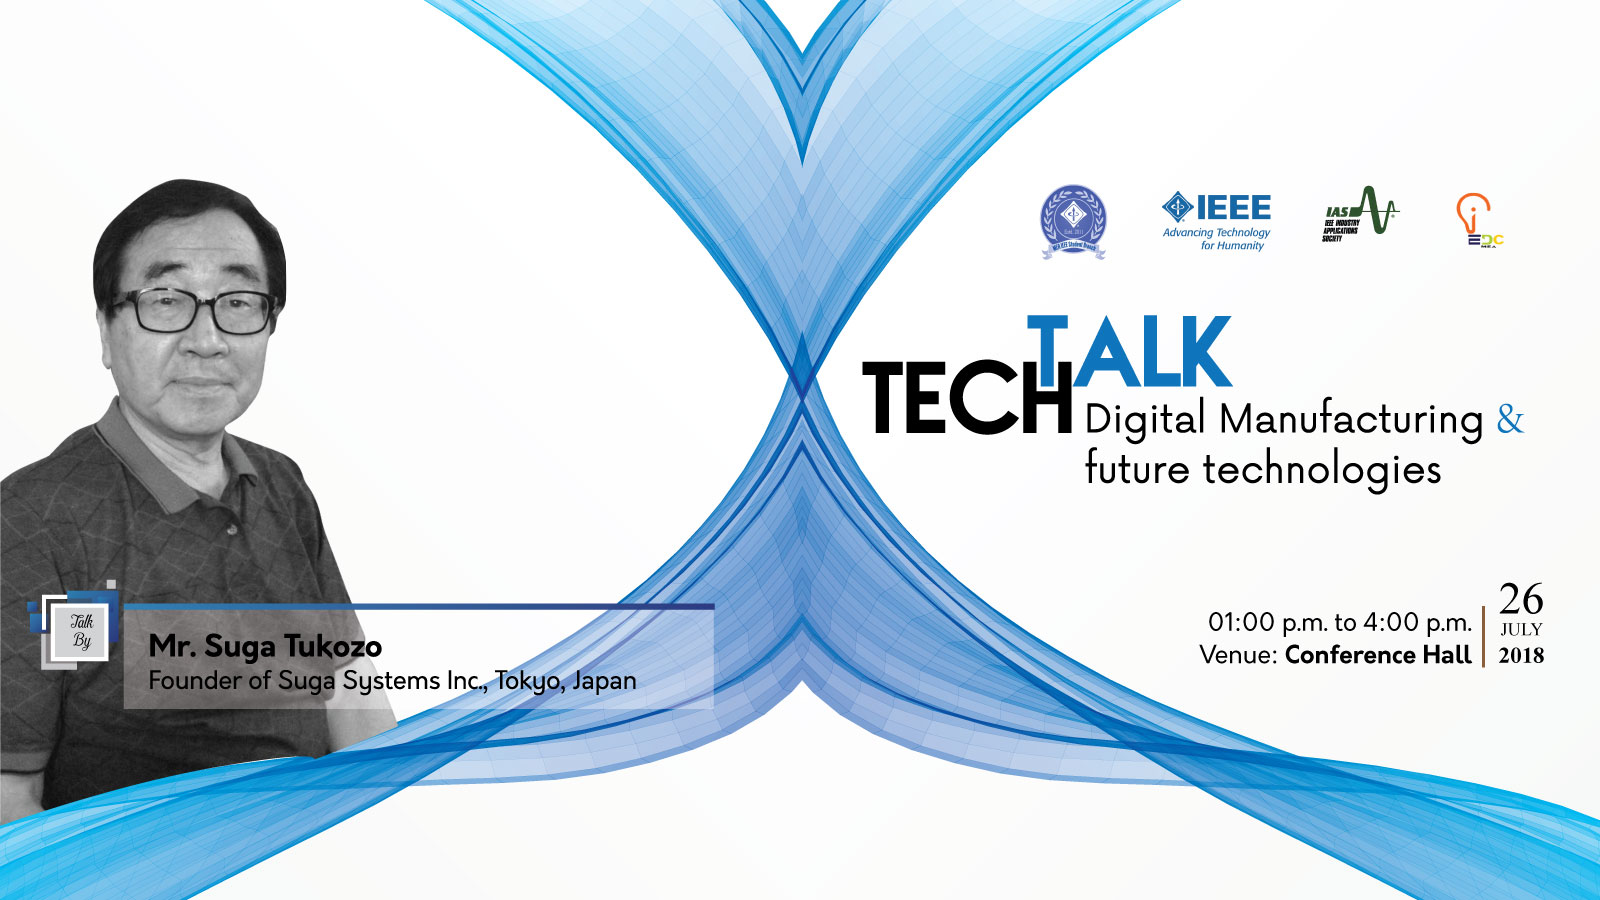 Tech Talk | Digital Manufacturing & Future Technologies